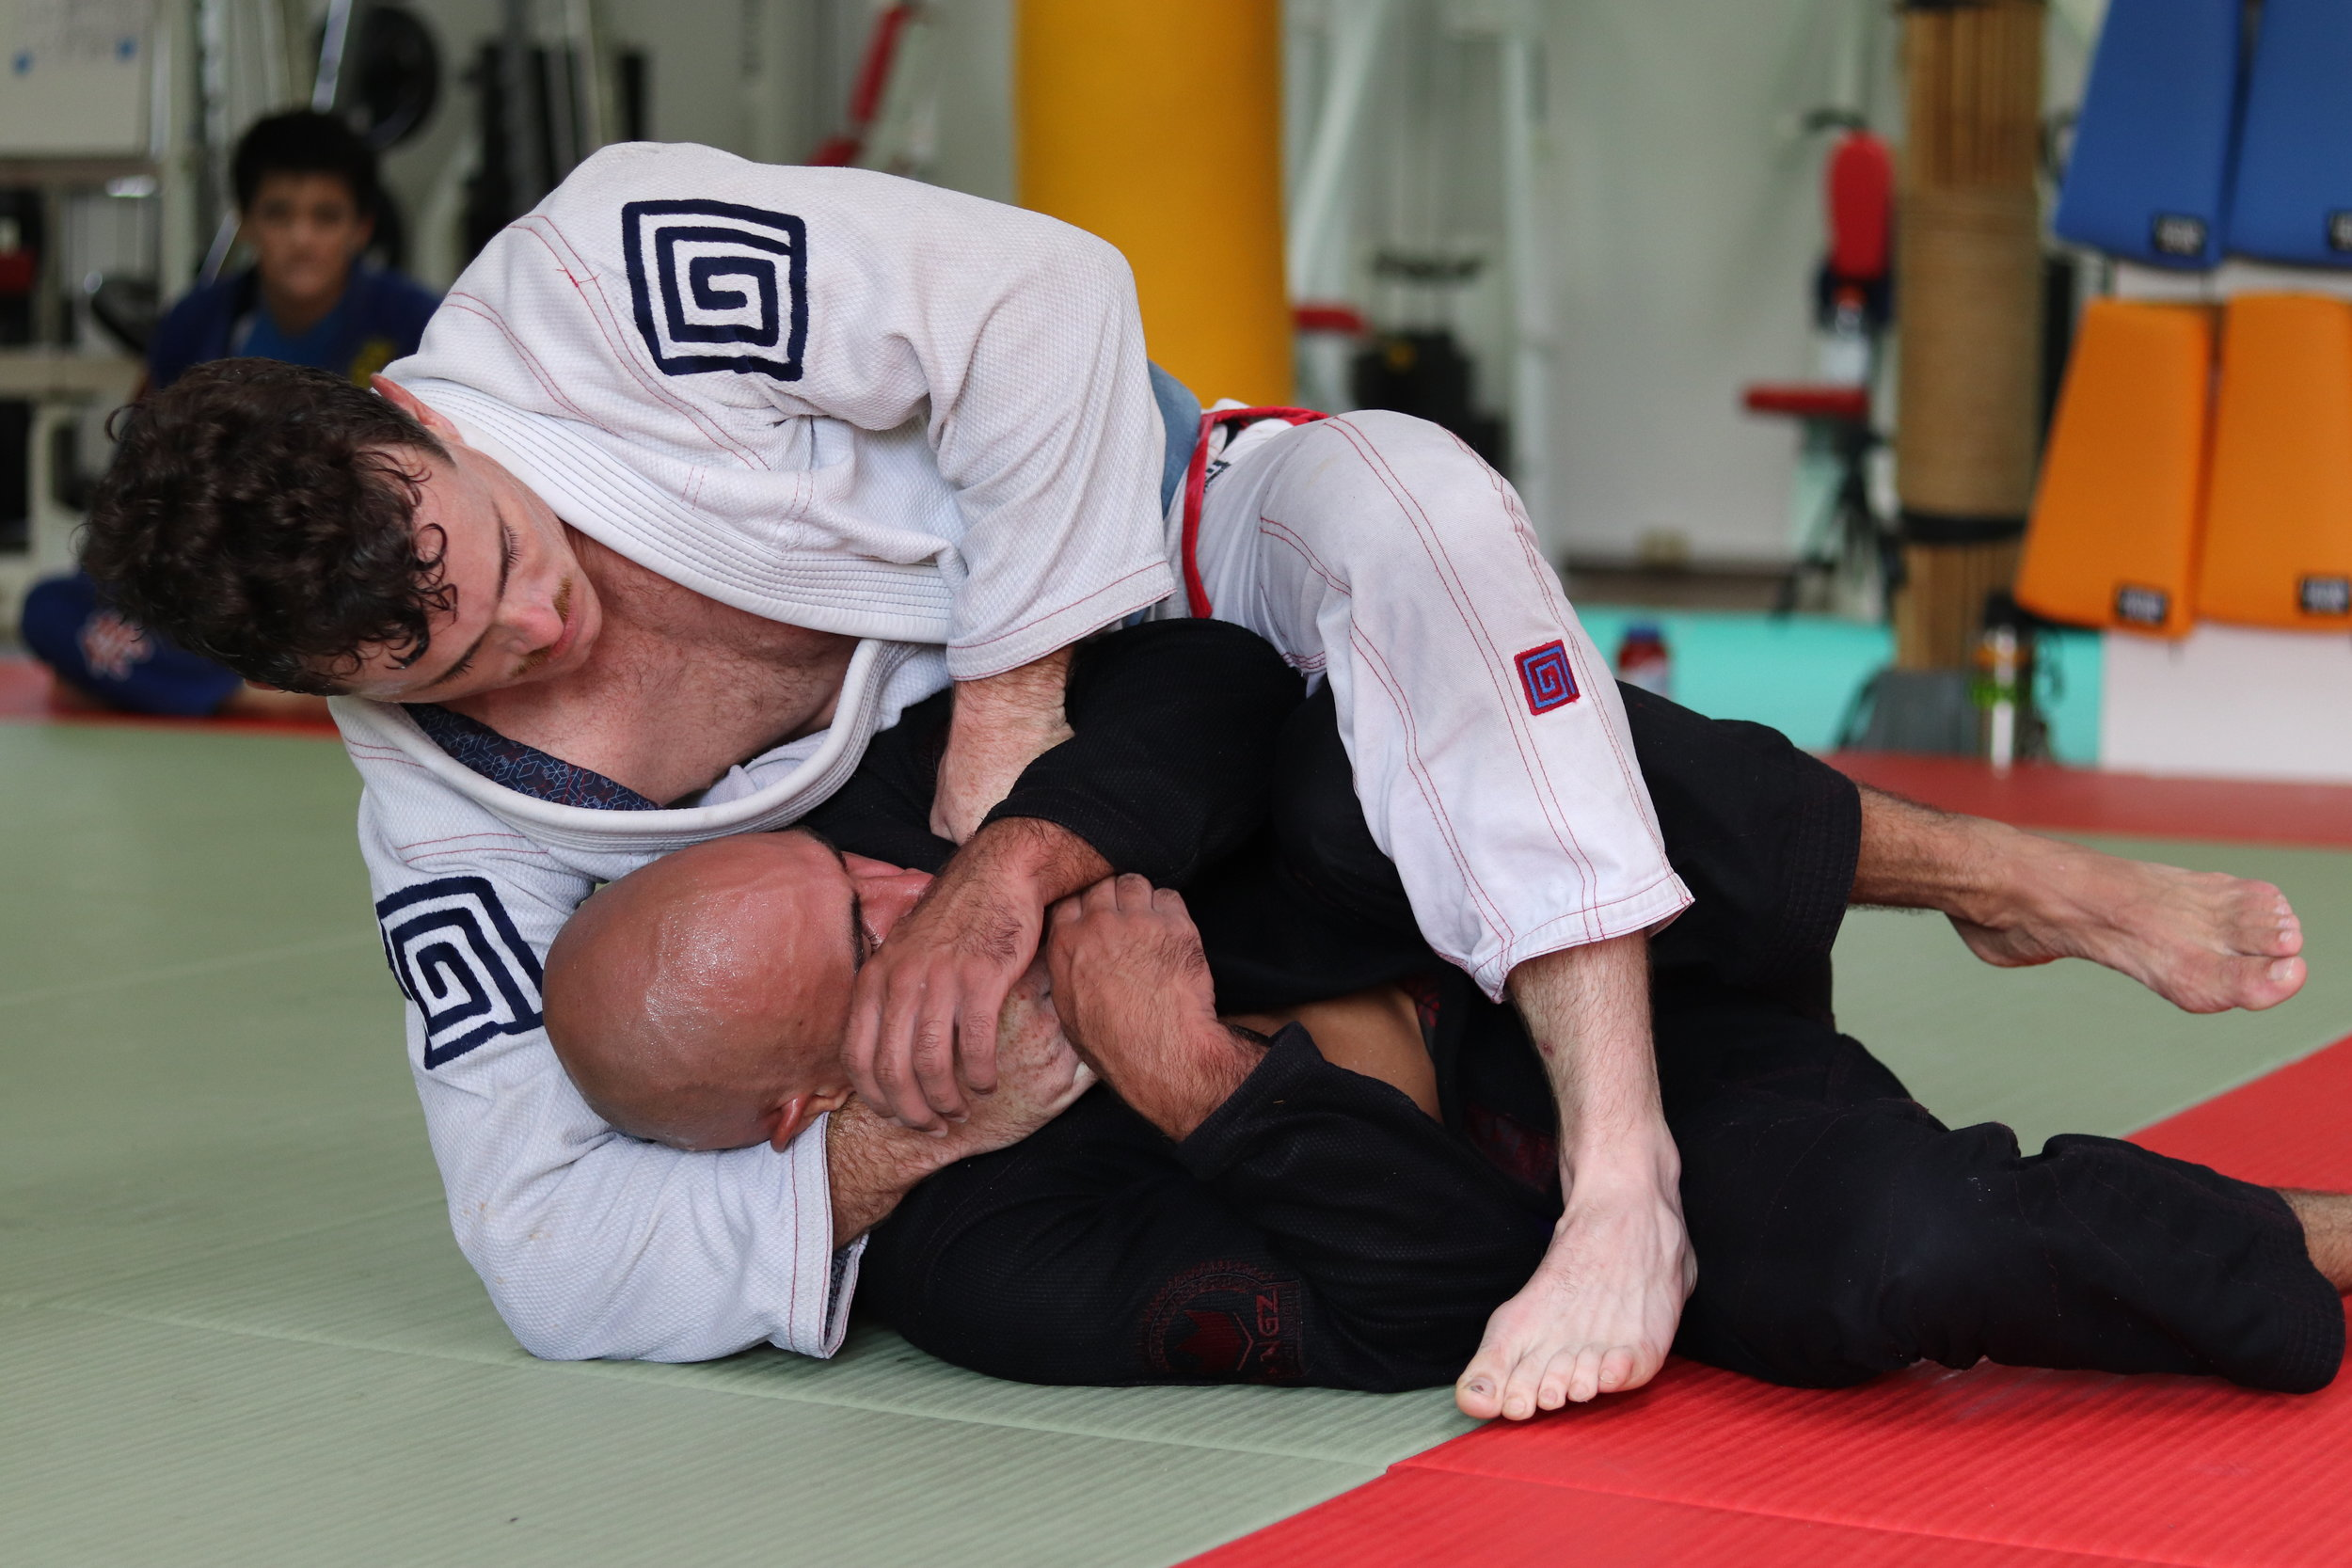 Brazilian Jiu-Jitsu is a hard martial art with a high attrition rate. Much of your success as a school is getting to the people more likely to stick it out before your competitors.